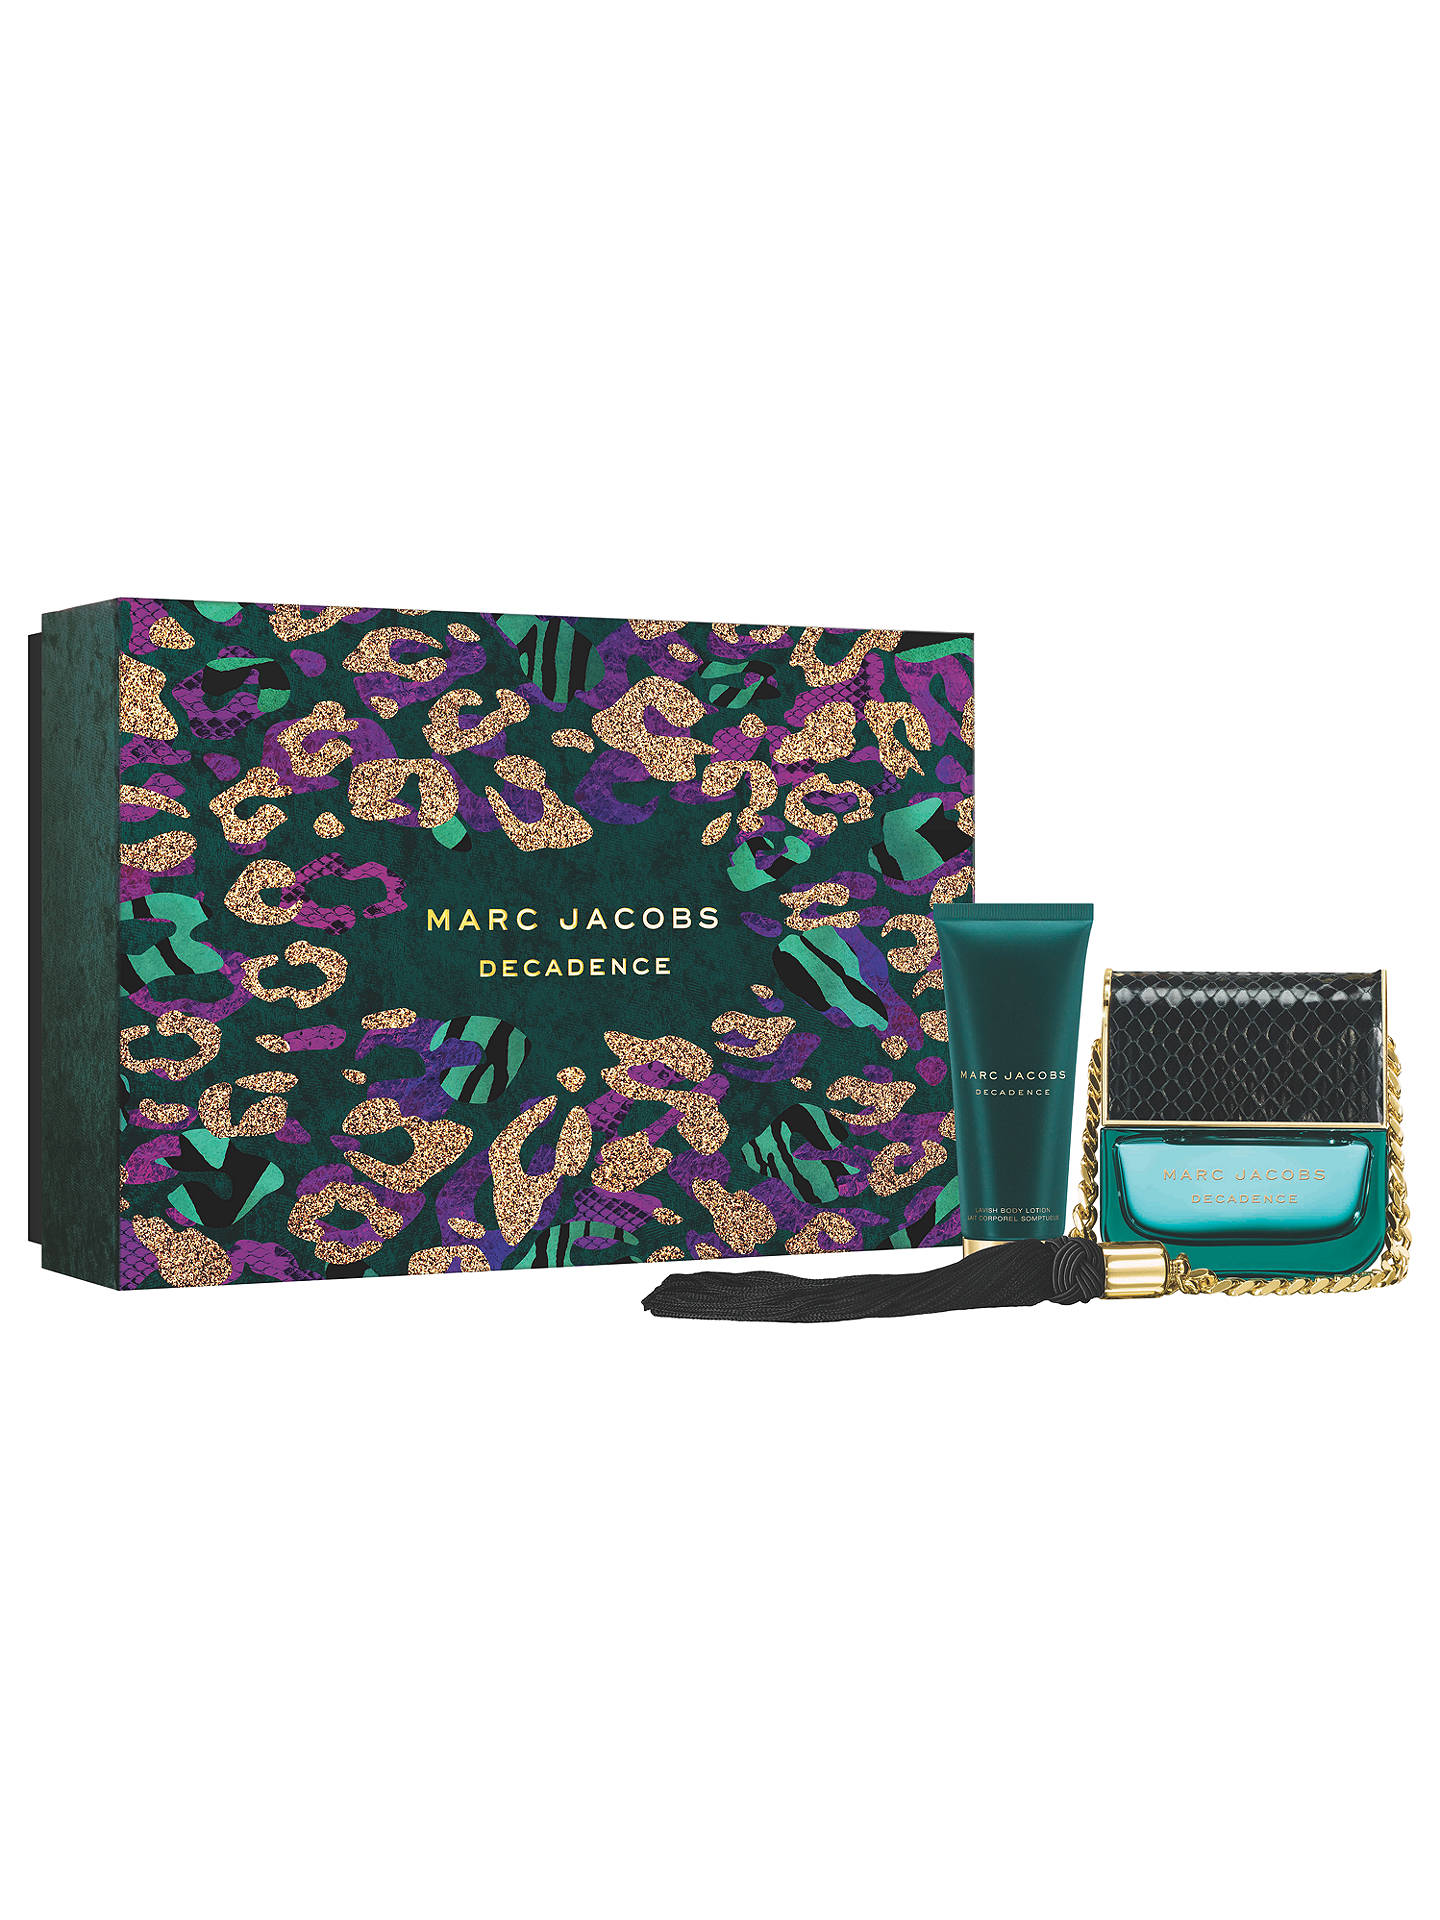 BuyMarc Jacobs Decadence 50ml Eau de Parfum Fragrance Gift Set Online at johnlewis.com